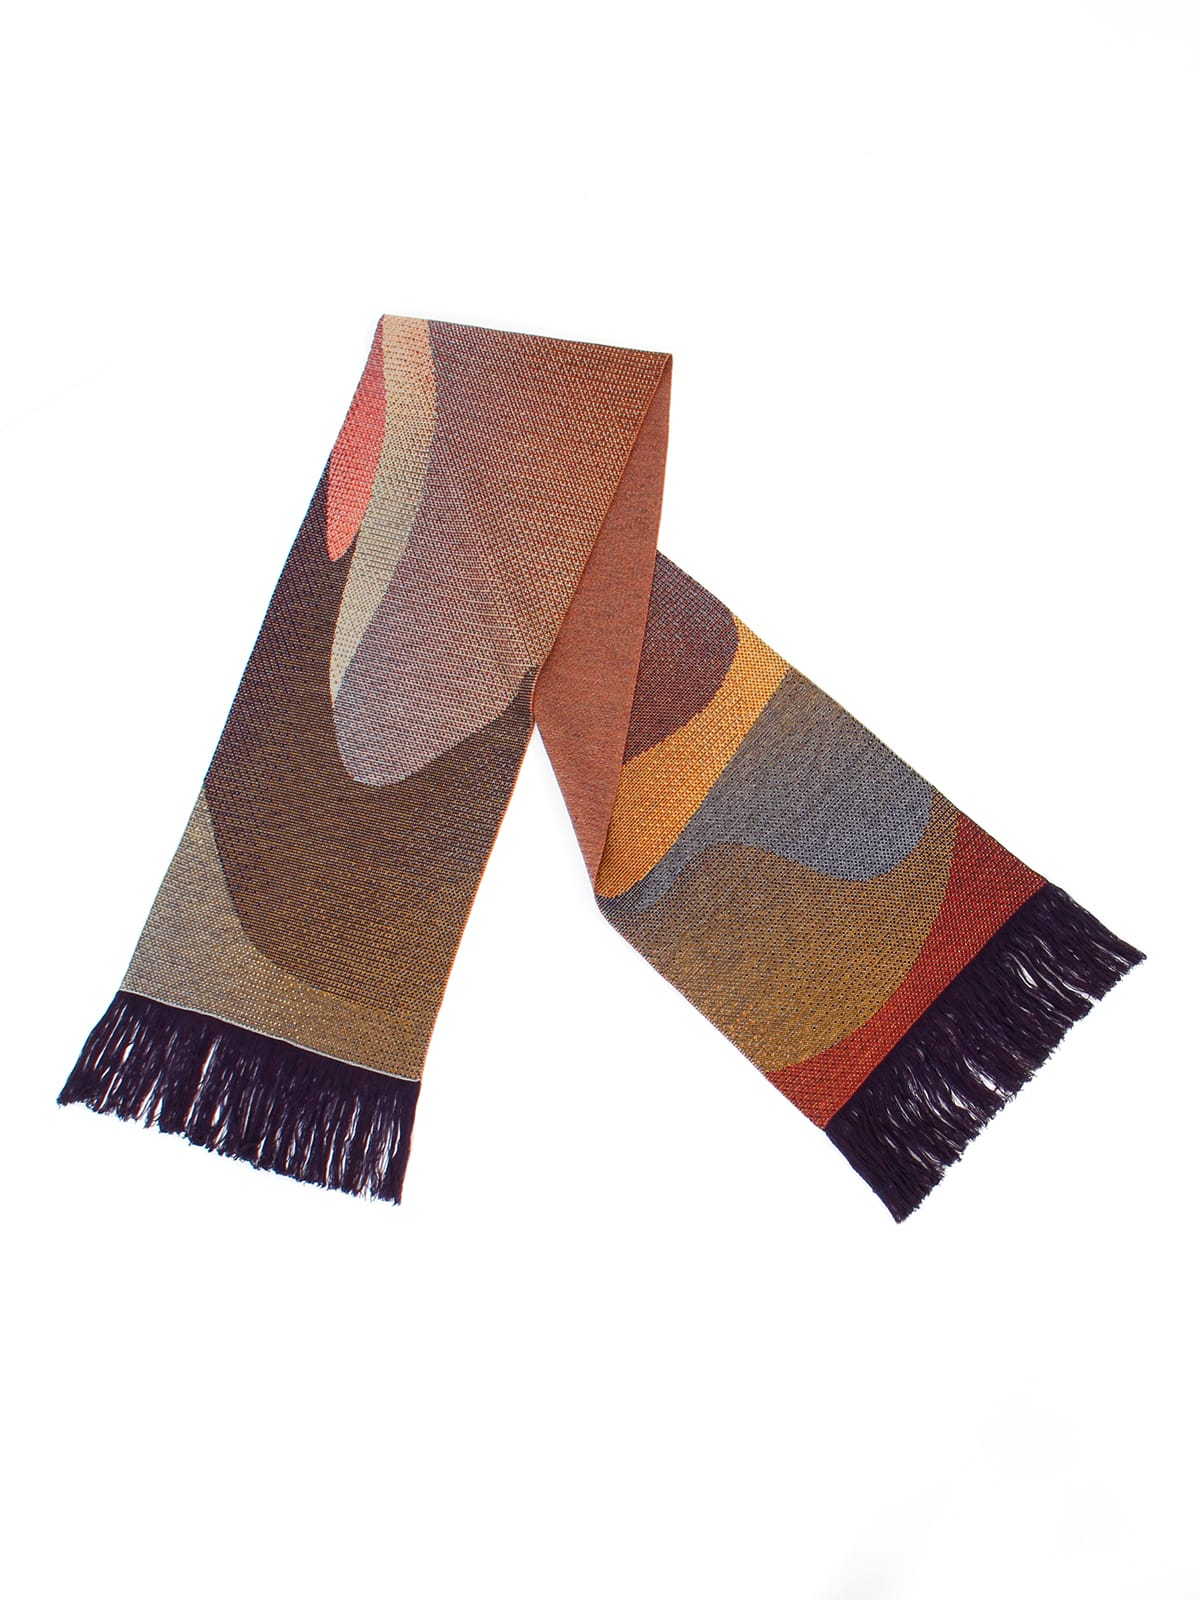 Knitted Scarf Musselshell - Merino Wool